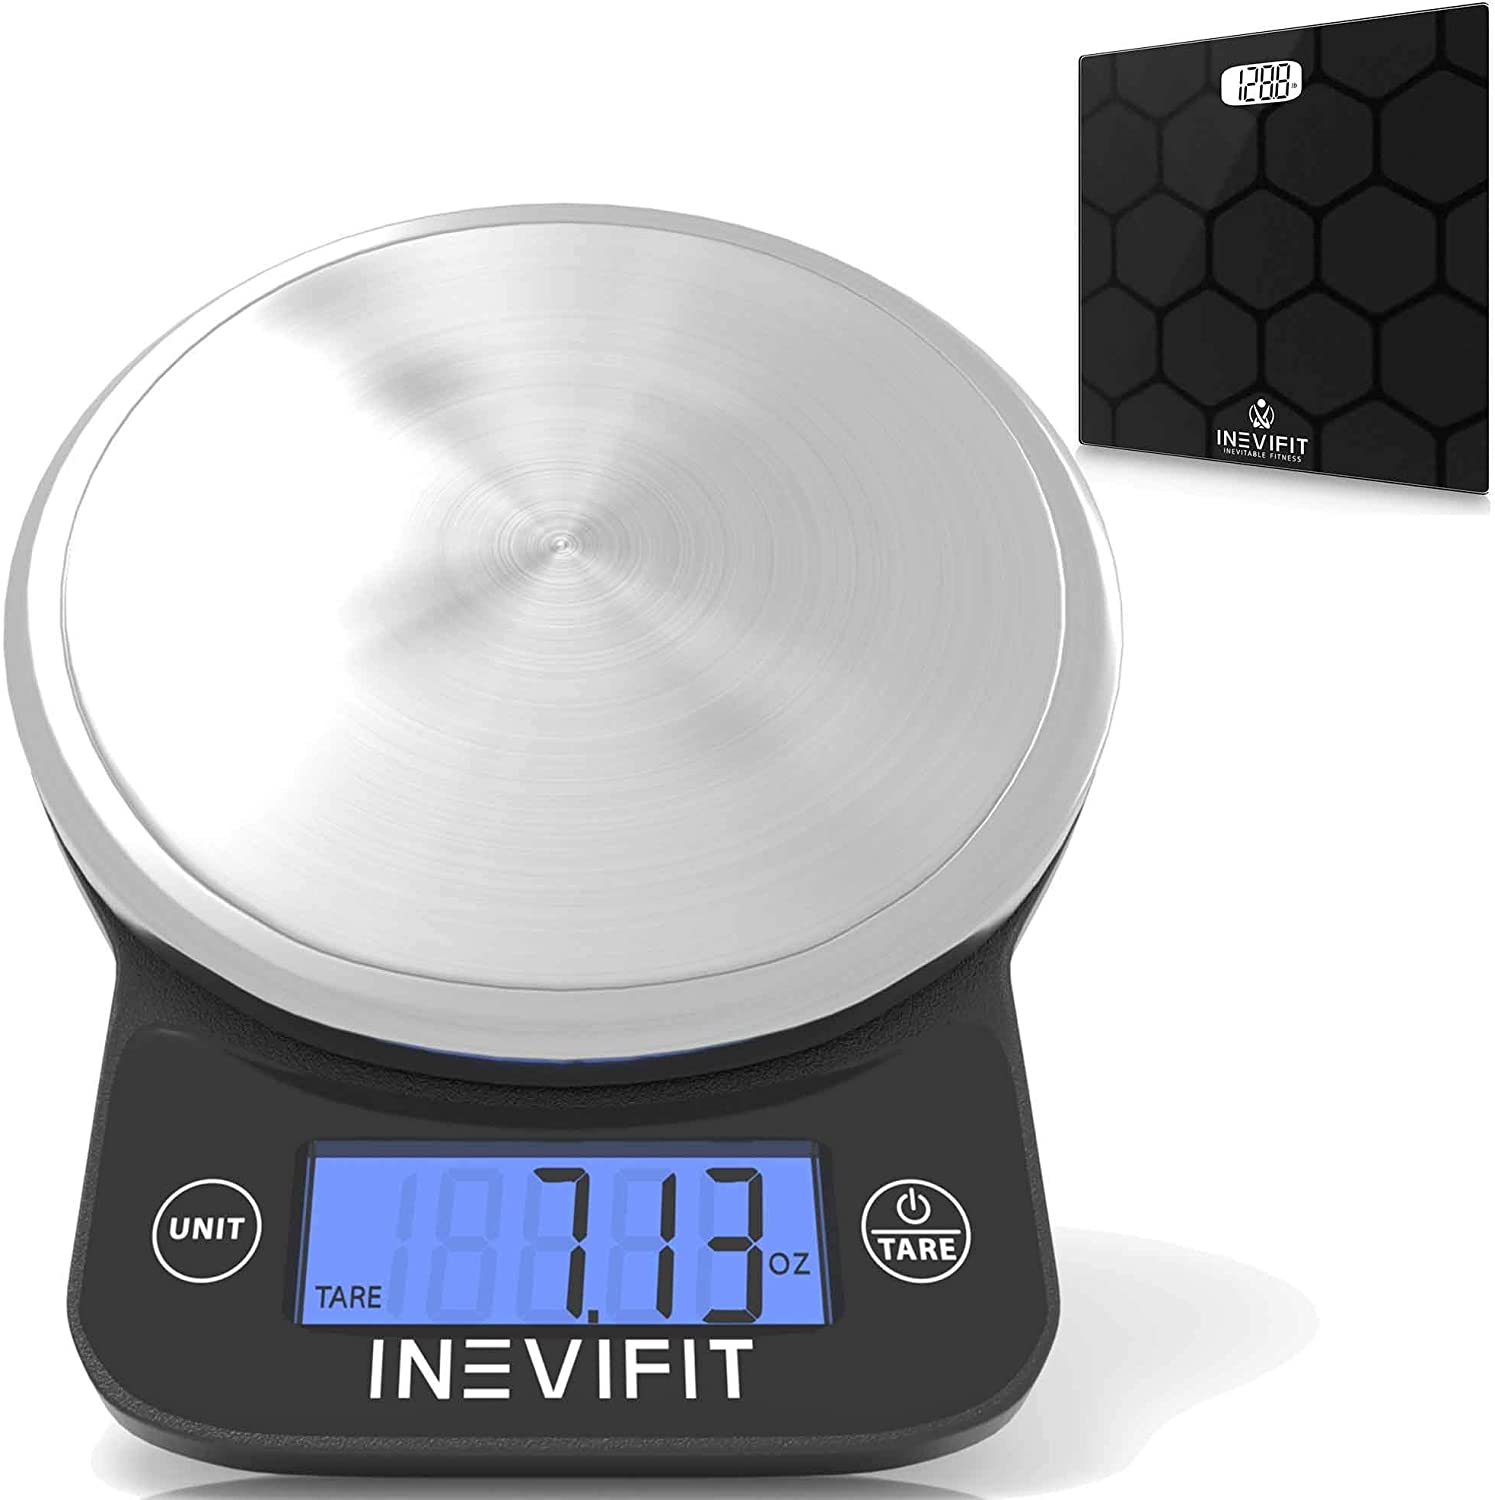 INEVIFIT Bathroom Scale & Digital Kitchen Scale Fitness Bundle, Complete Body Composition and Nutrition Tracking Solution with Batteries Included